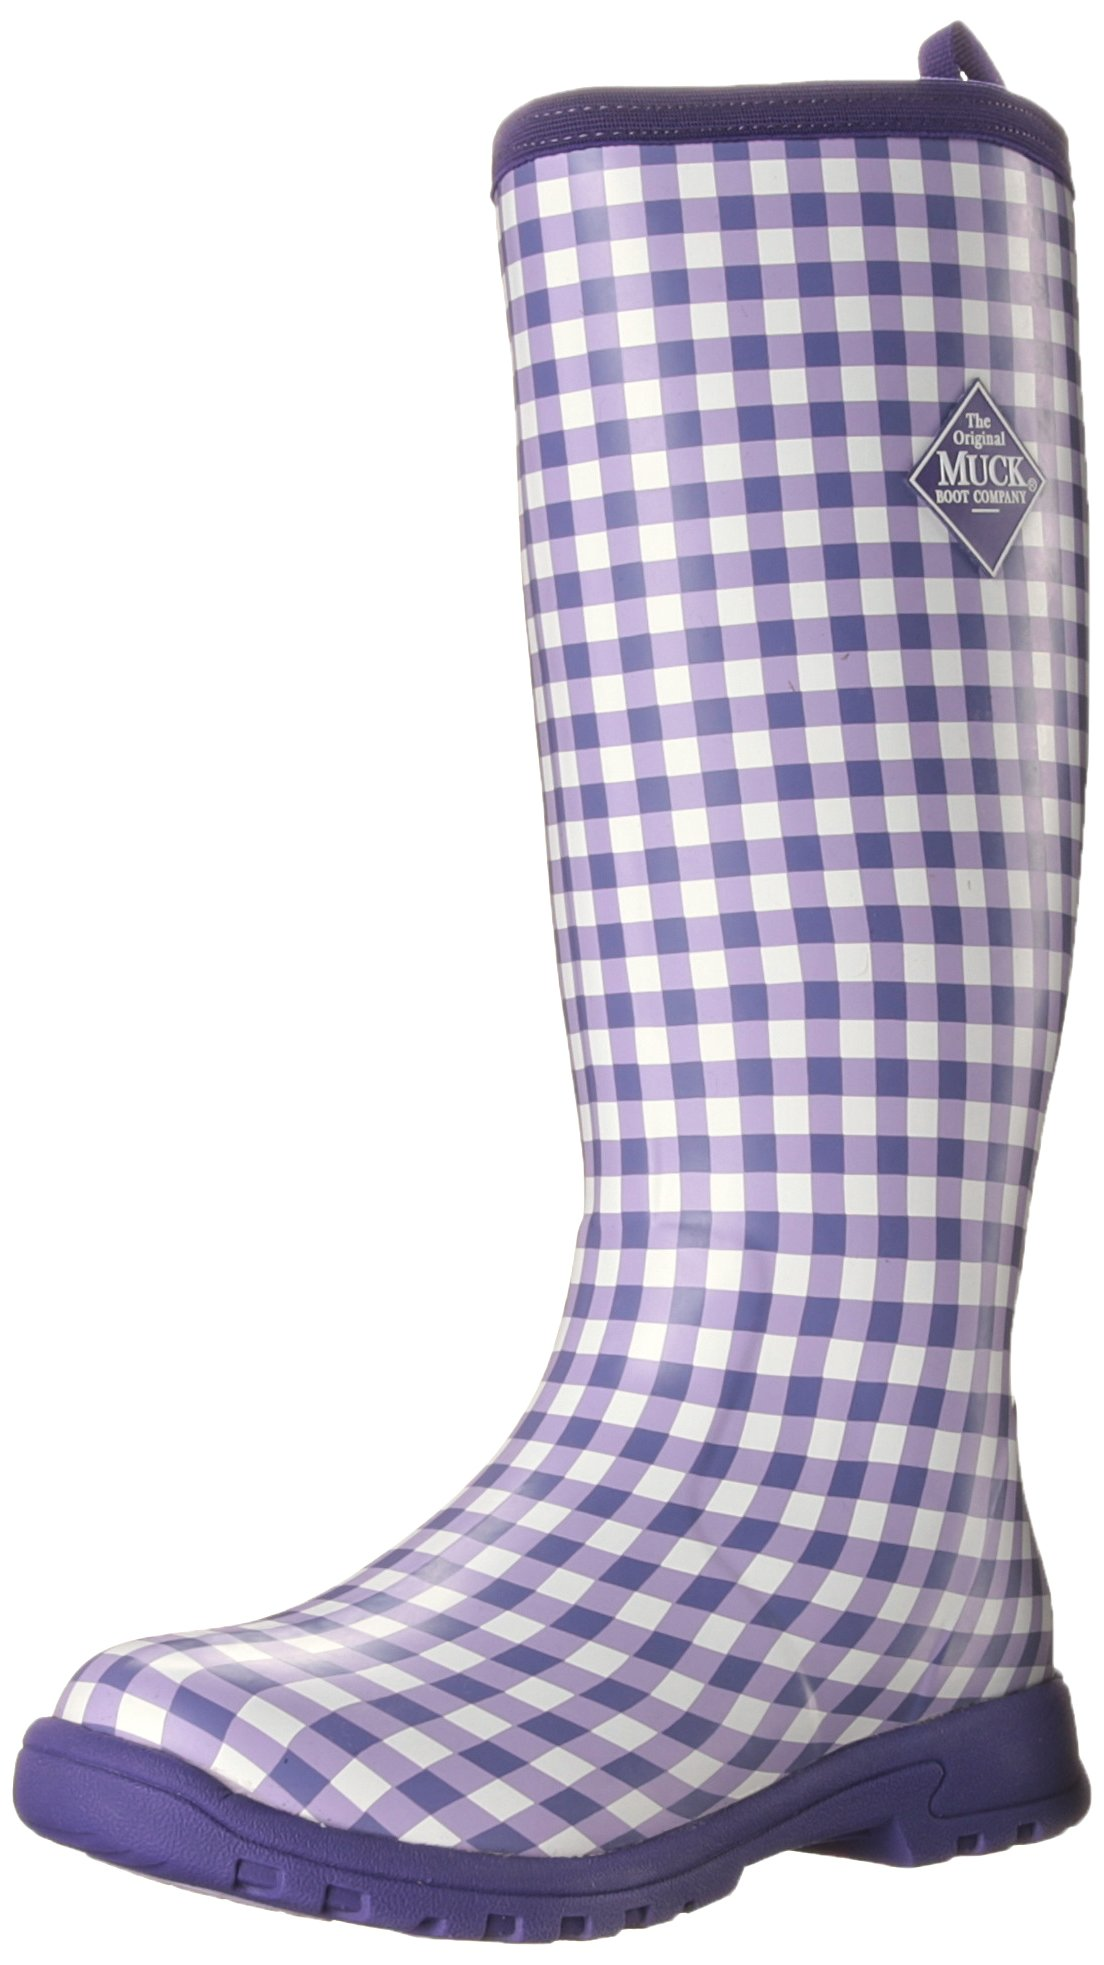 MuckBoots Women's Breezy Tall-W, Purple Gingham, 6 M US